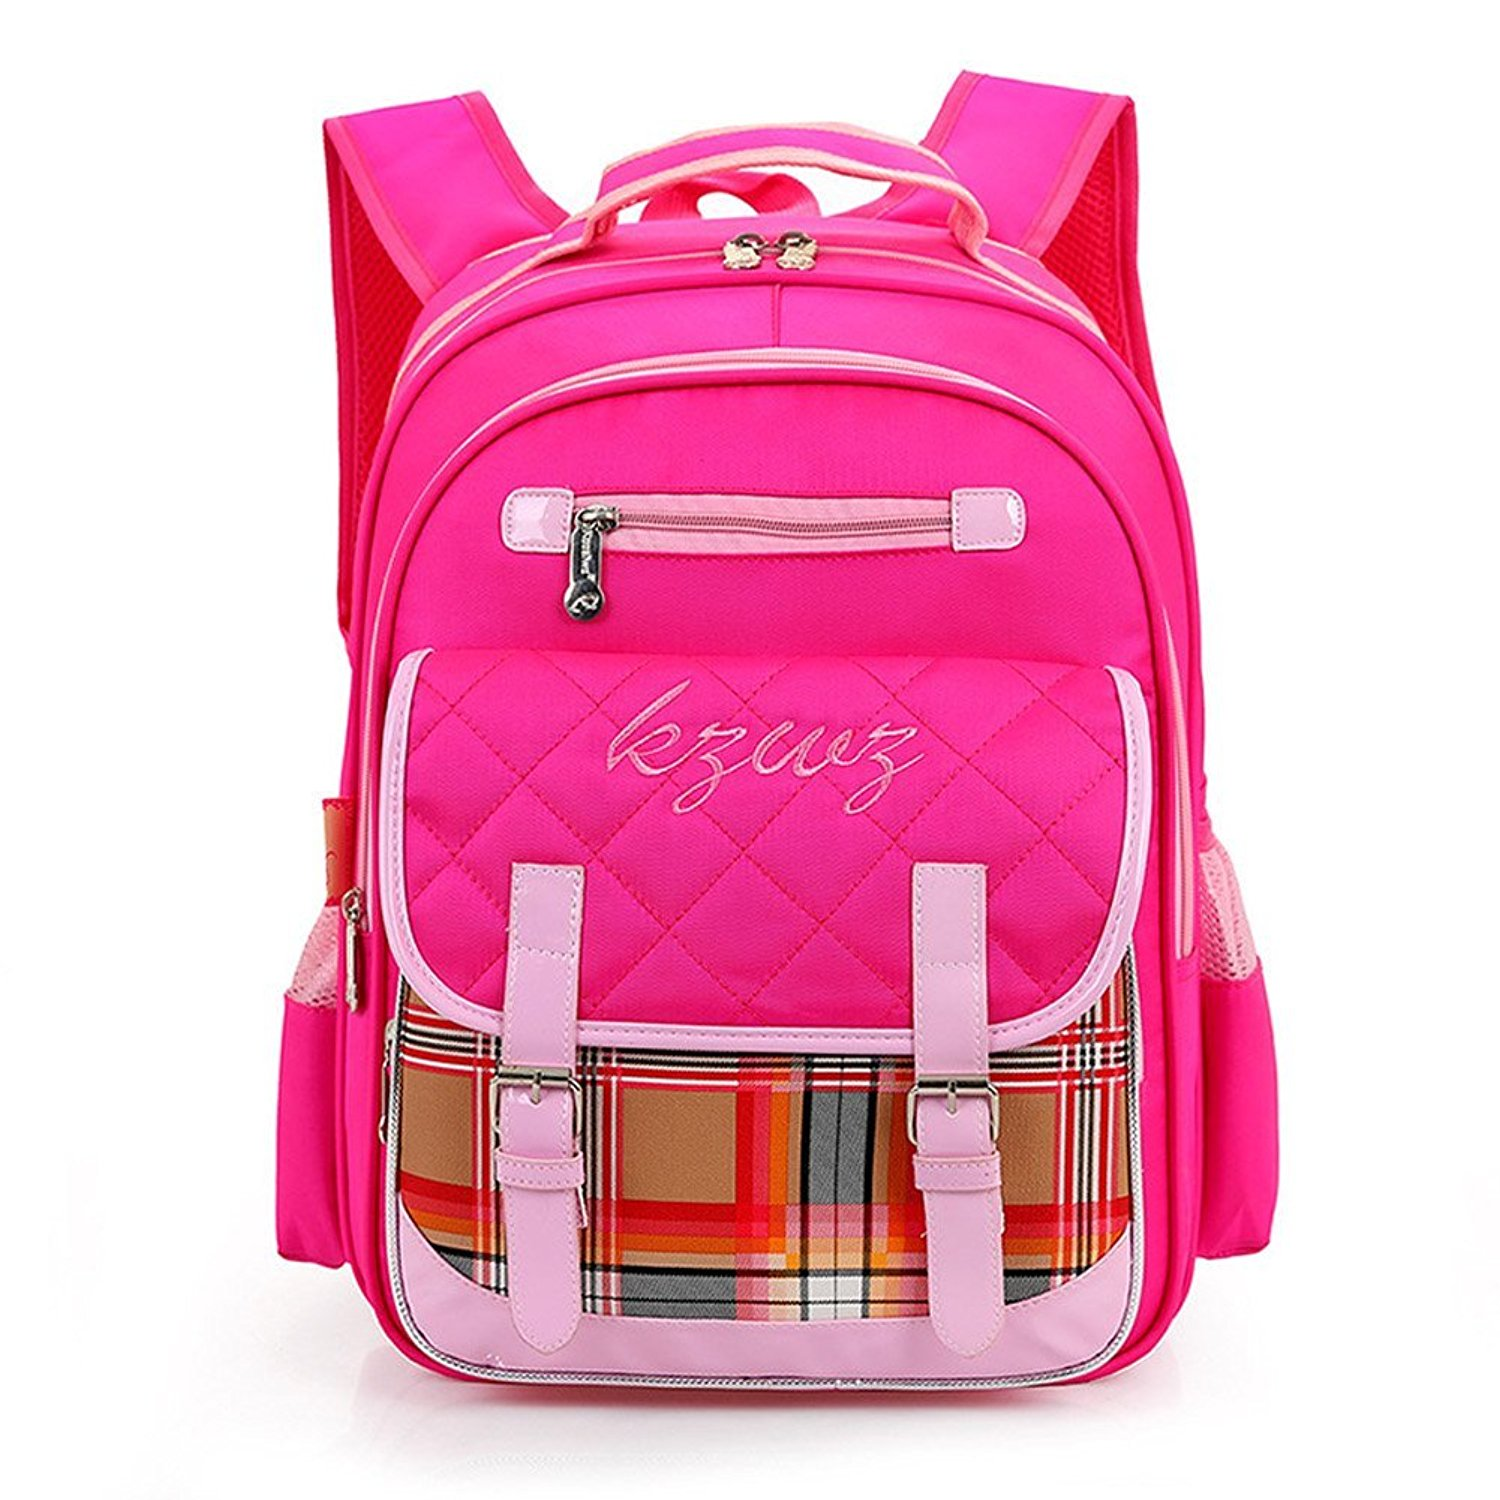 5ca312d838 Dsinlare Cute Waterproof School Backpacks for Girls Kids Bookbags Book Bags